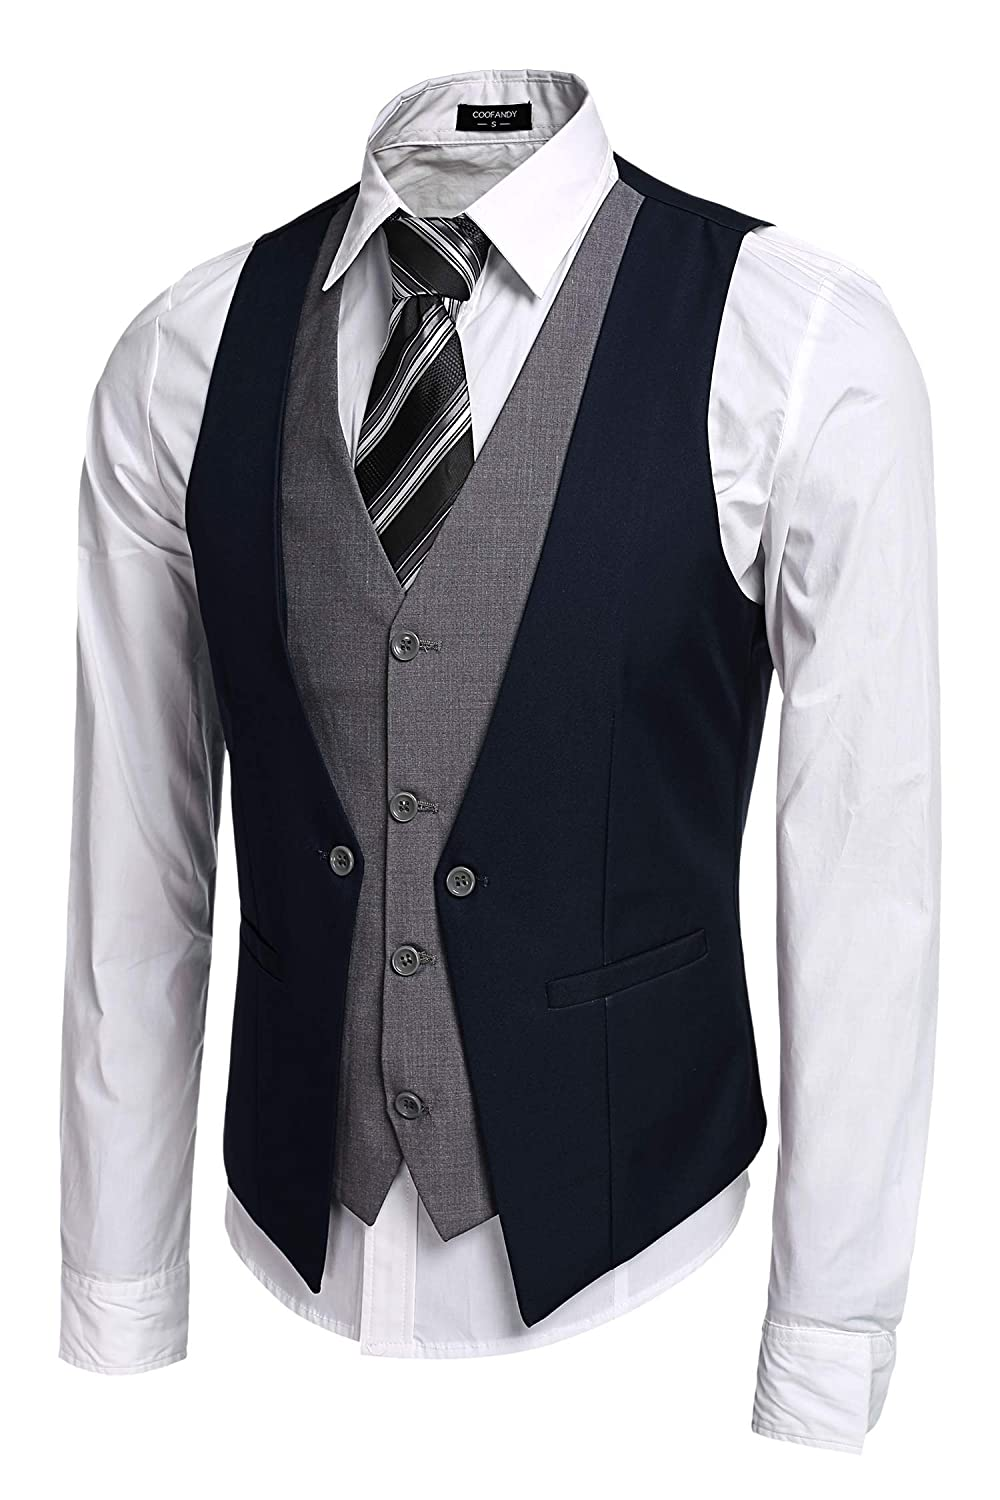 Coofandy Men's V-neck Sleeveless Slim Fit Jacket Business Suit ...